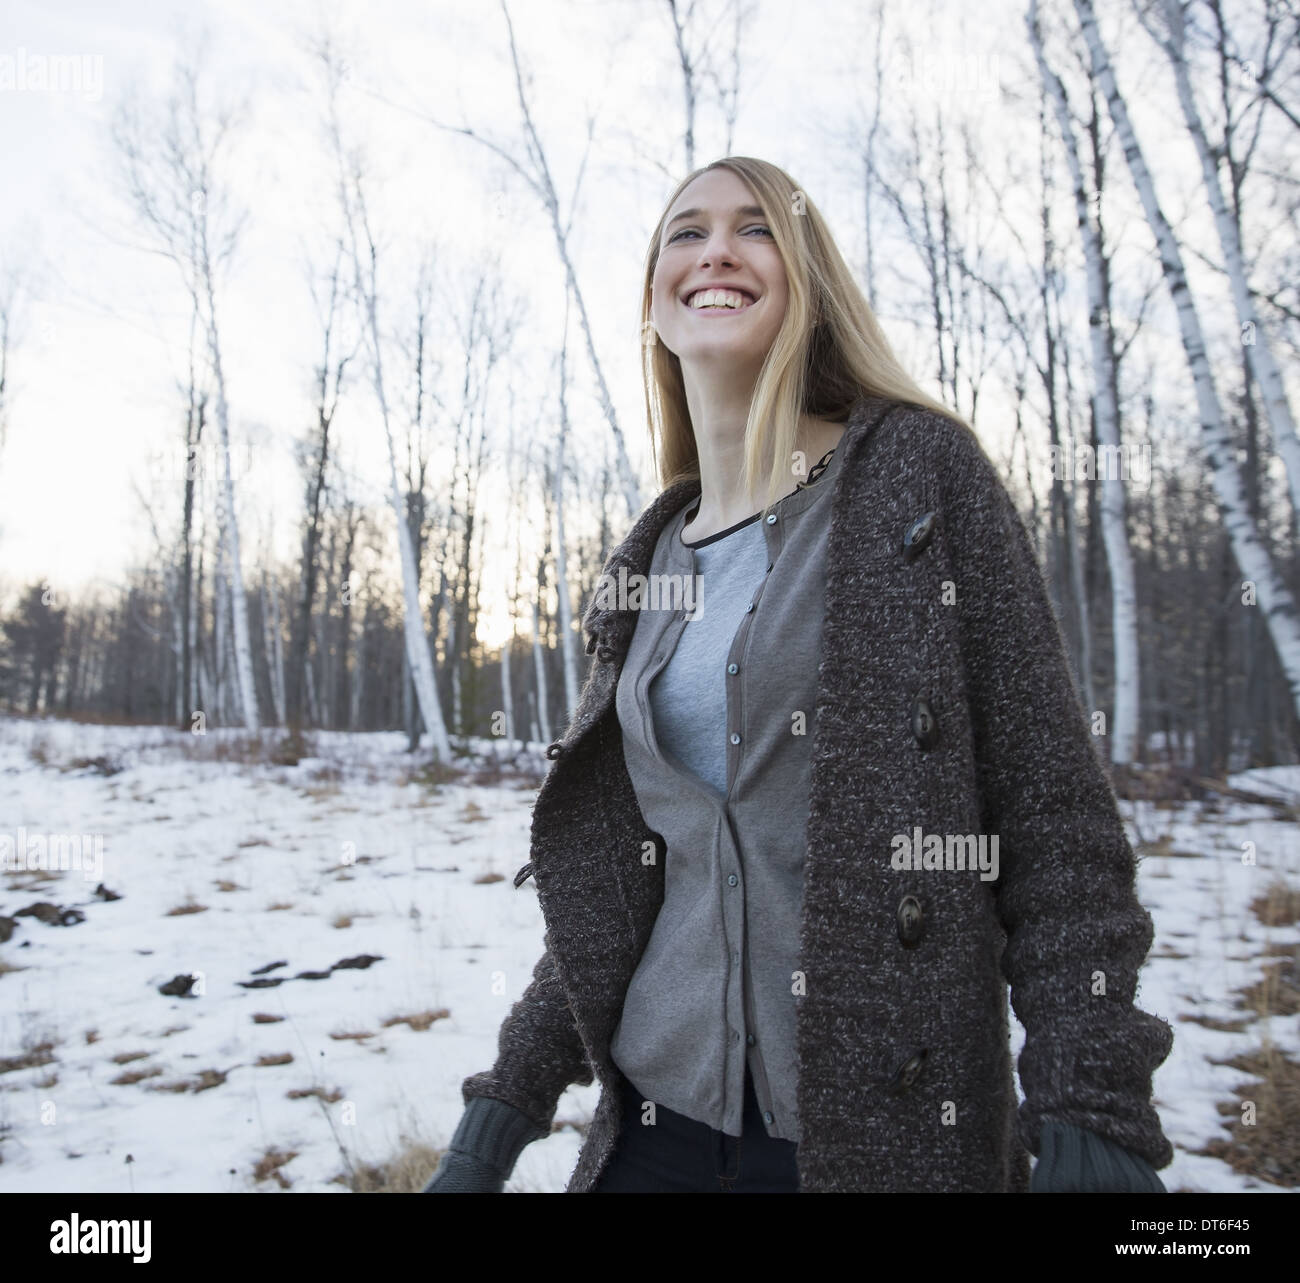 A young woman with long blonde hair outdoors on a winter day. - Stock Image